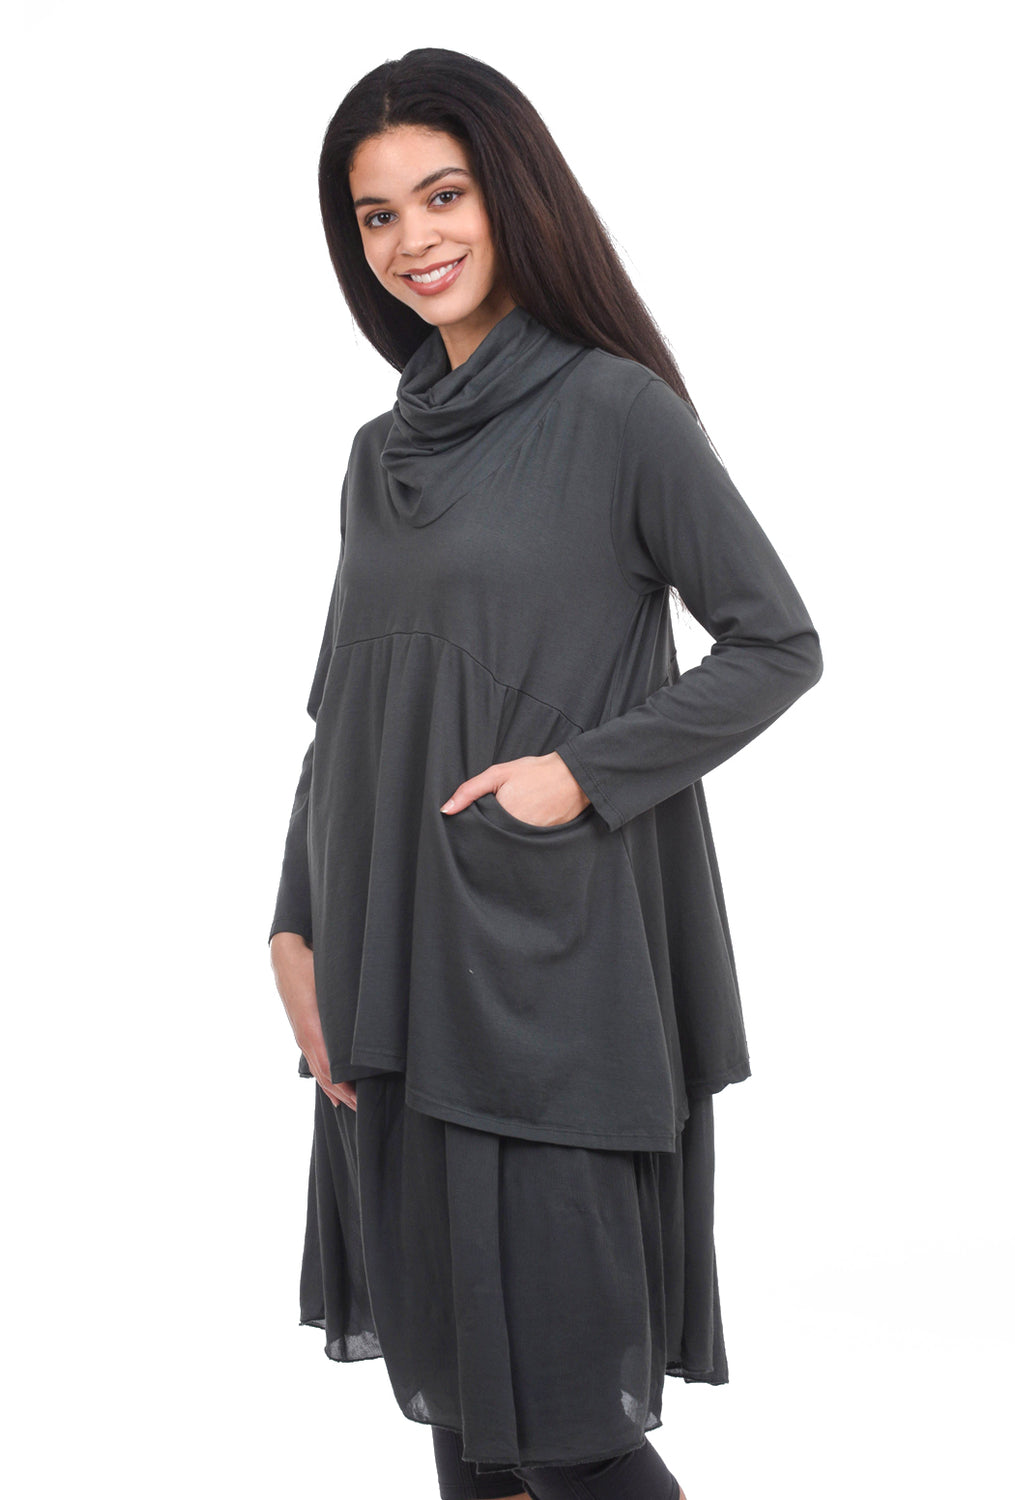 Oro Bonito Double-Layer Cowl Dress, Charcoal One Size Charcoal